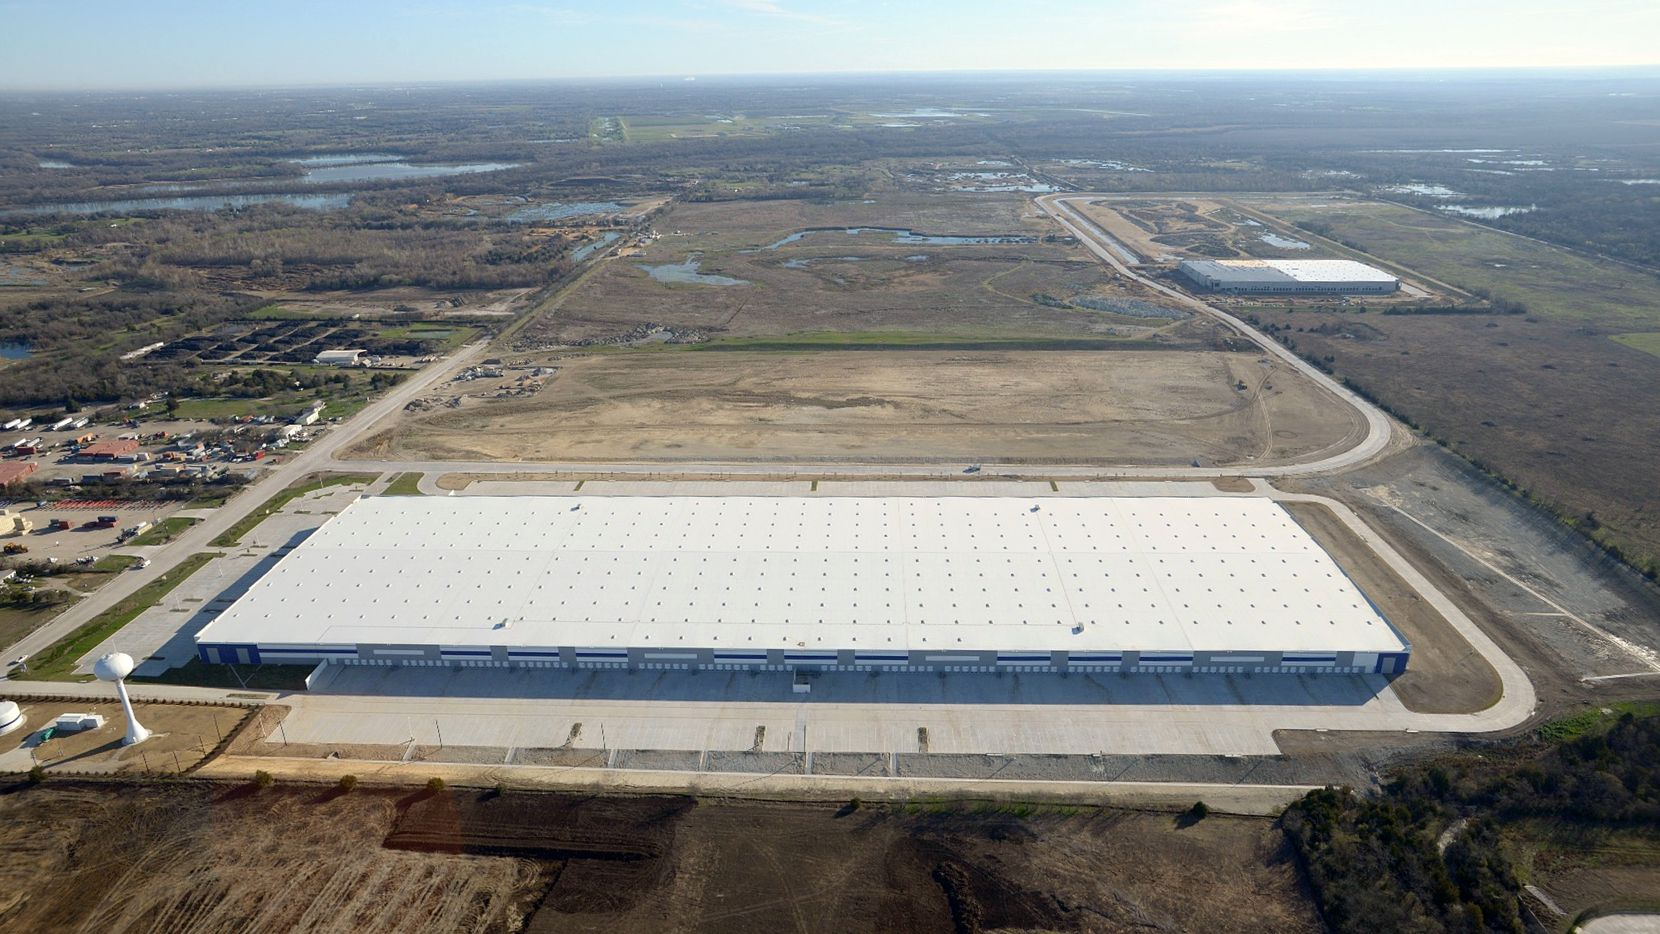 The Southport Logistics Park is room for more than 8 million square feet of warehouses.